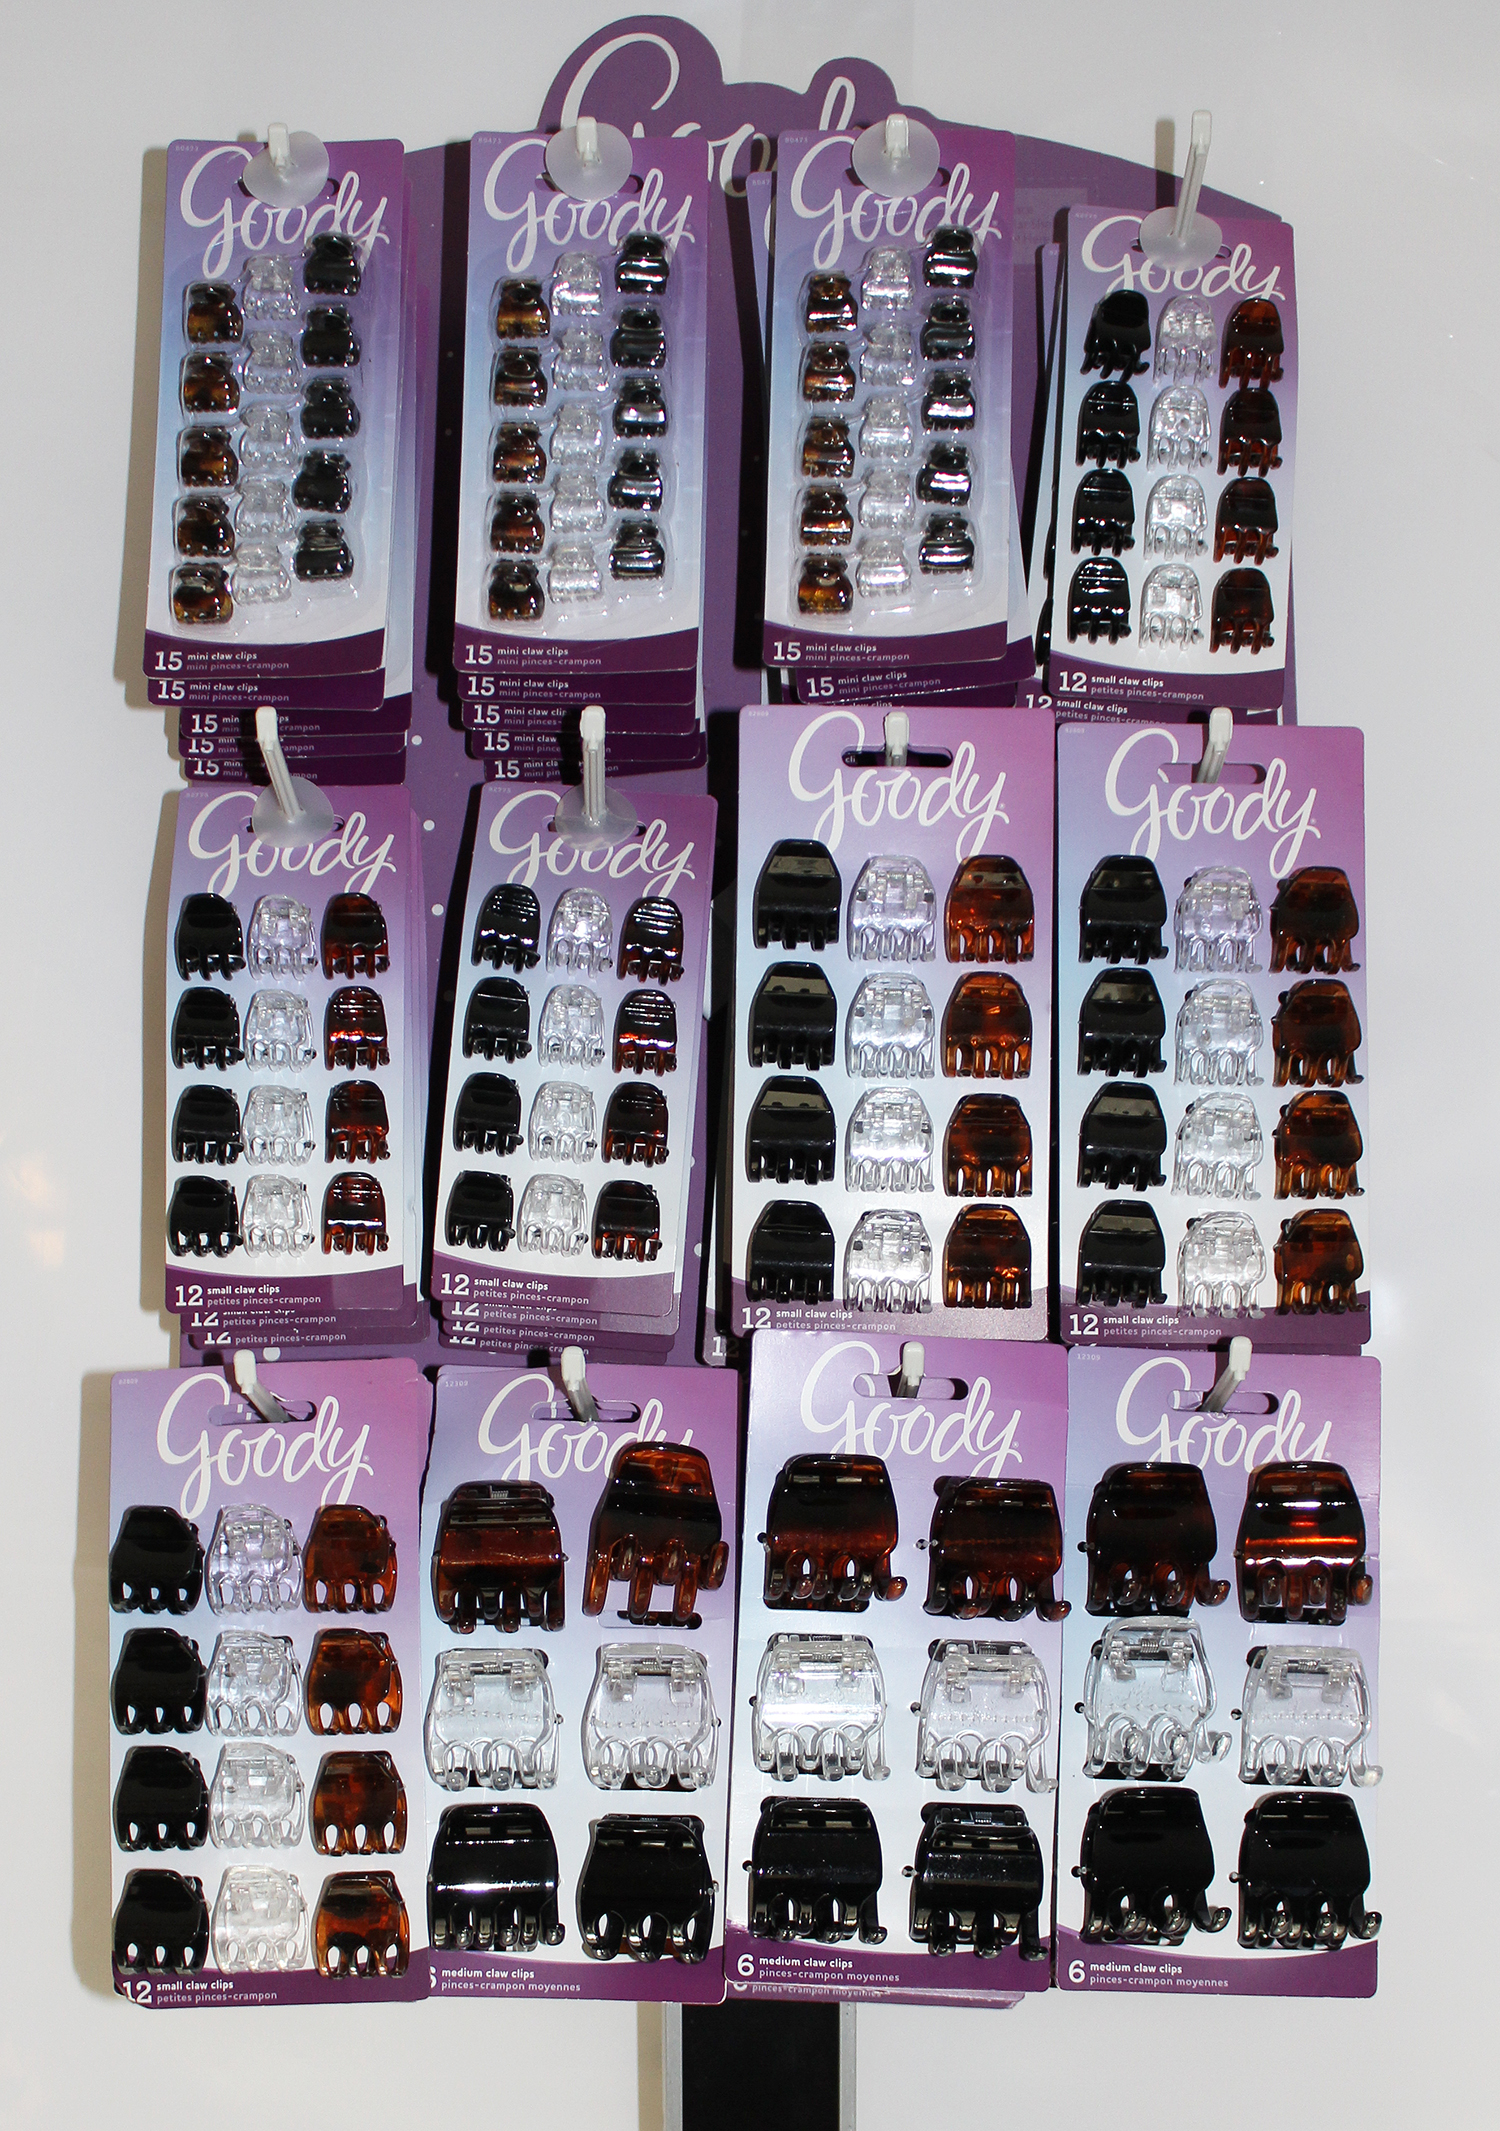 Goody Claw Clips Half Side Rack Display - 48 Packs